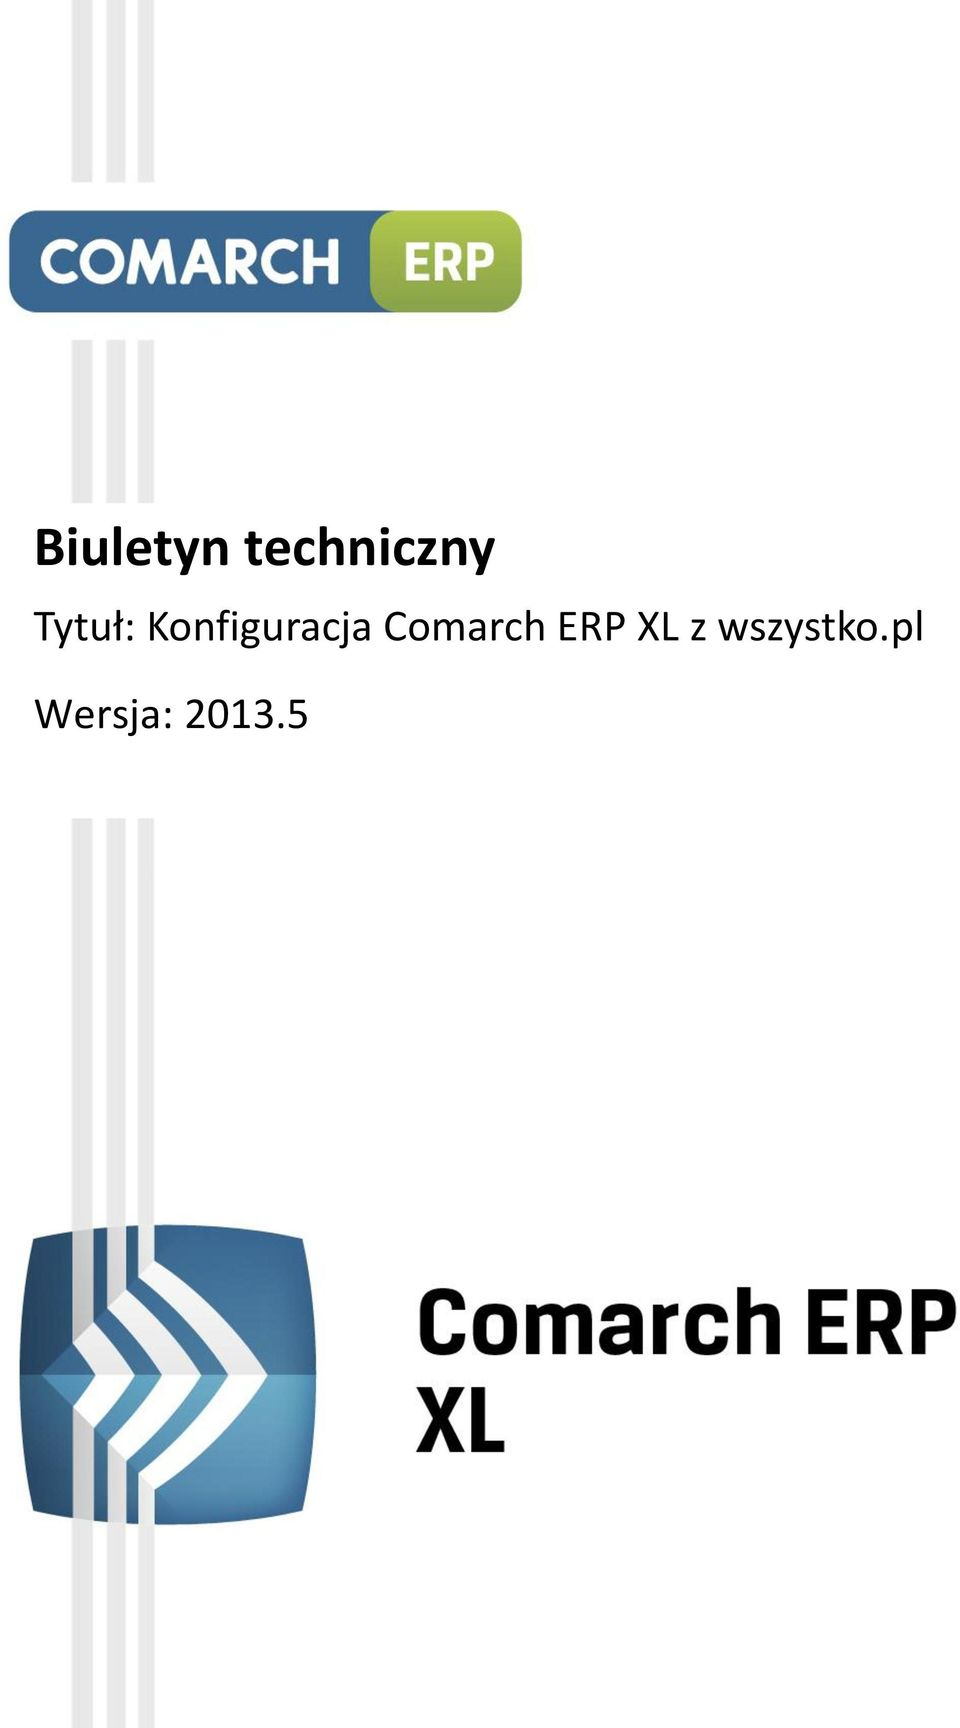 Comarch ERP XL z